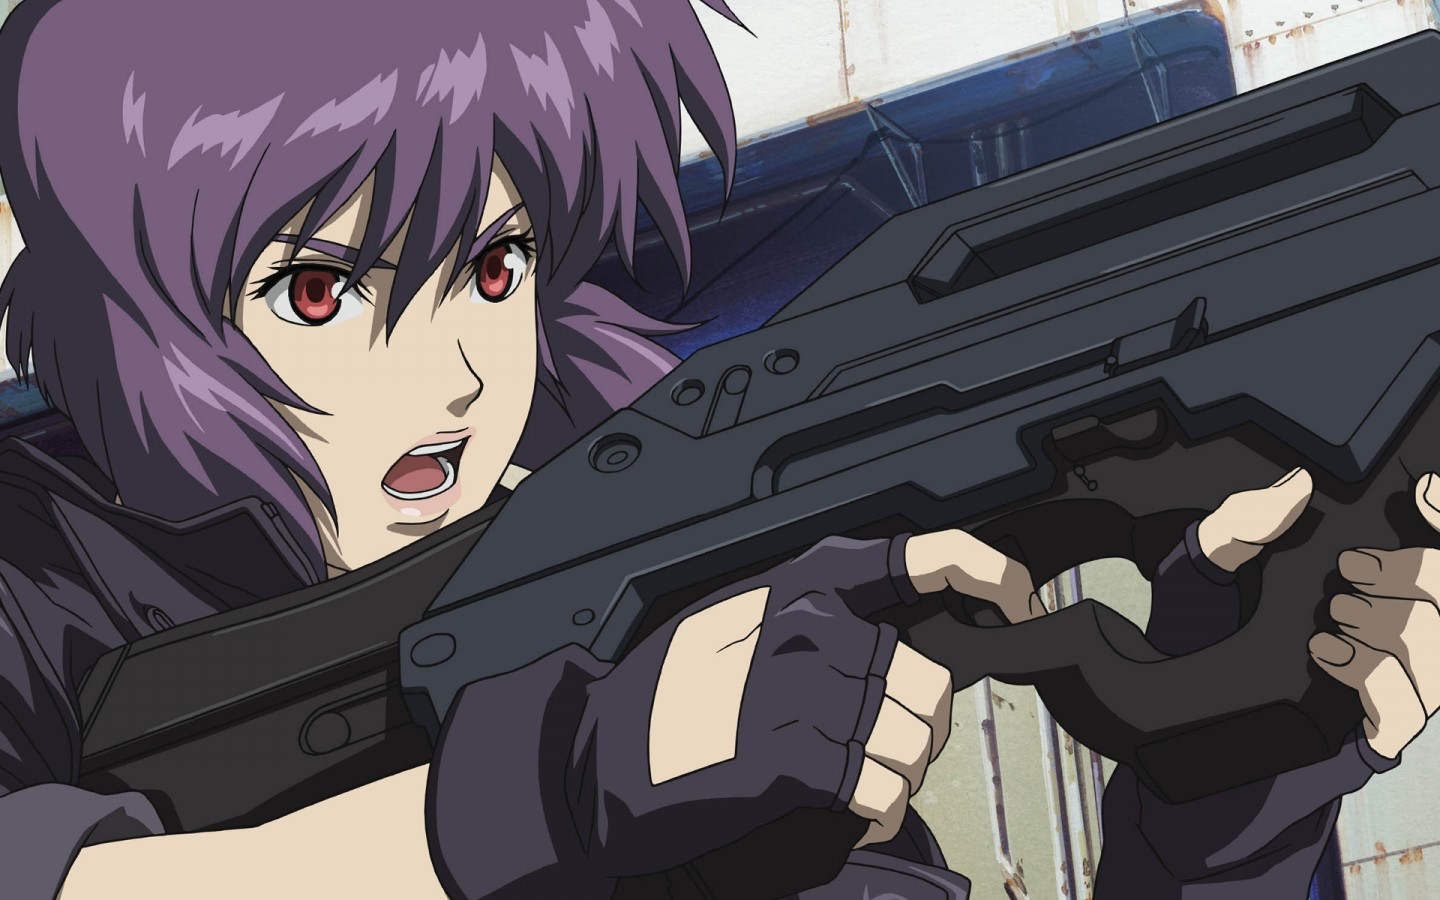 Female firing gun in Ghost in the Shell 1995 animatedfilmreviews.blogspot.com